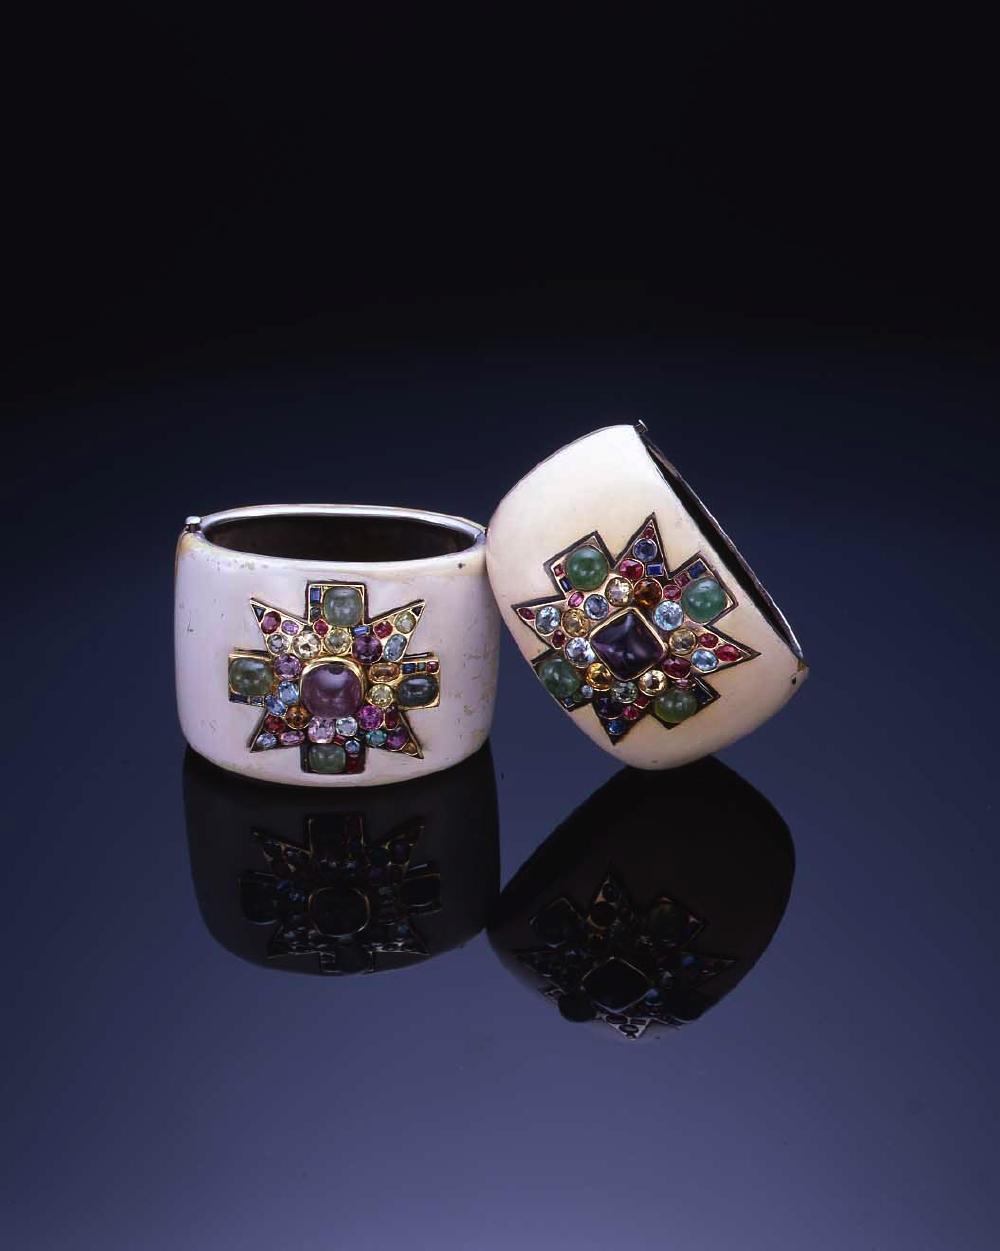 Coco Chanel's Maltese Cross Cuffs